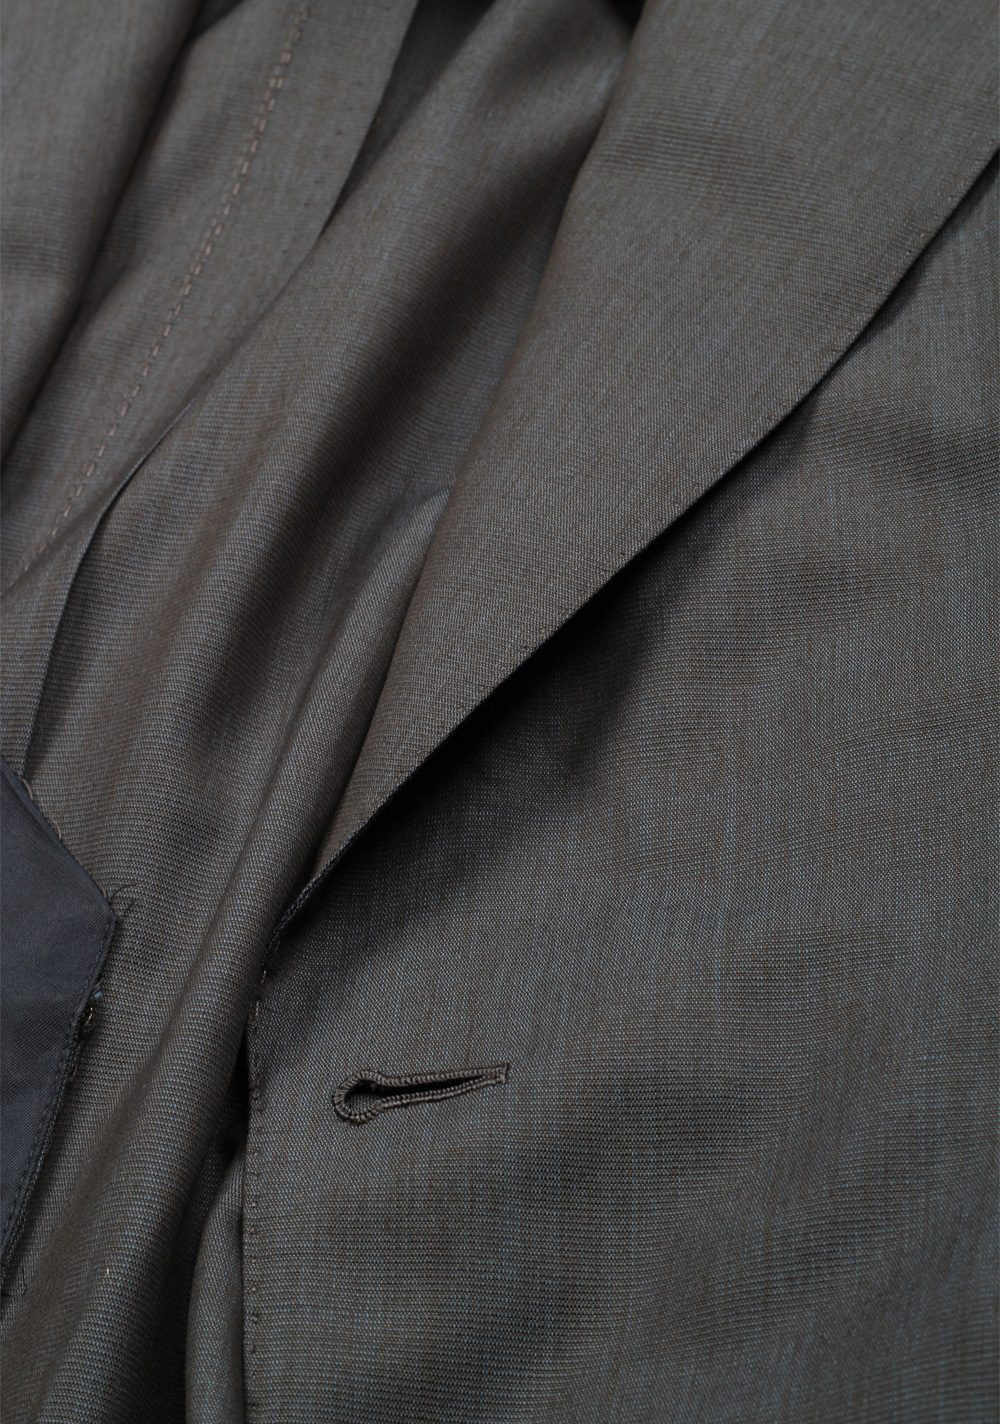 TOM FORD Shelton Gray Suit Size 48 / 38R U.S. In Wool Silk | Costume Limité